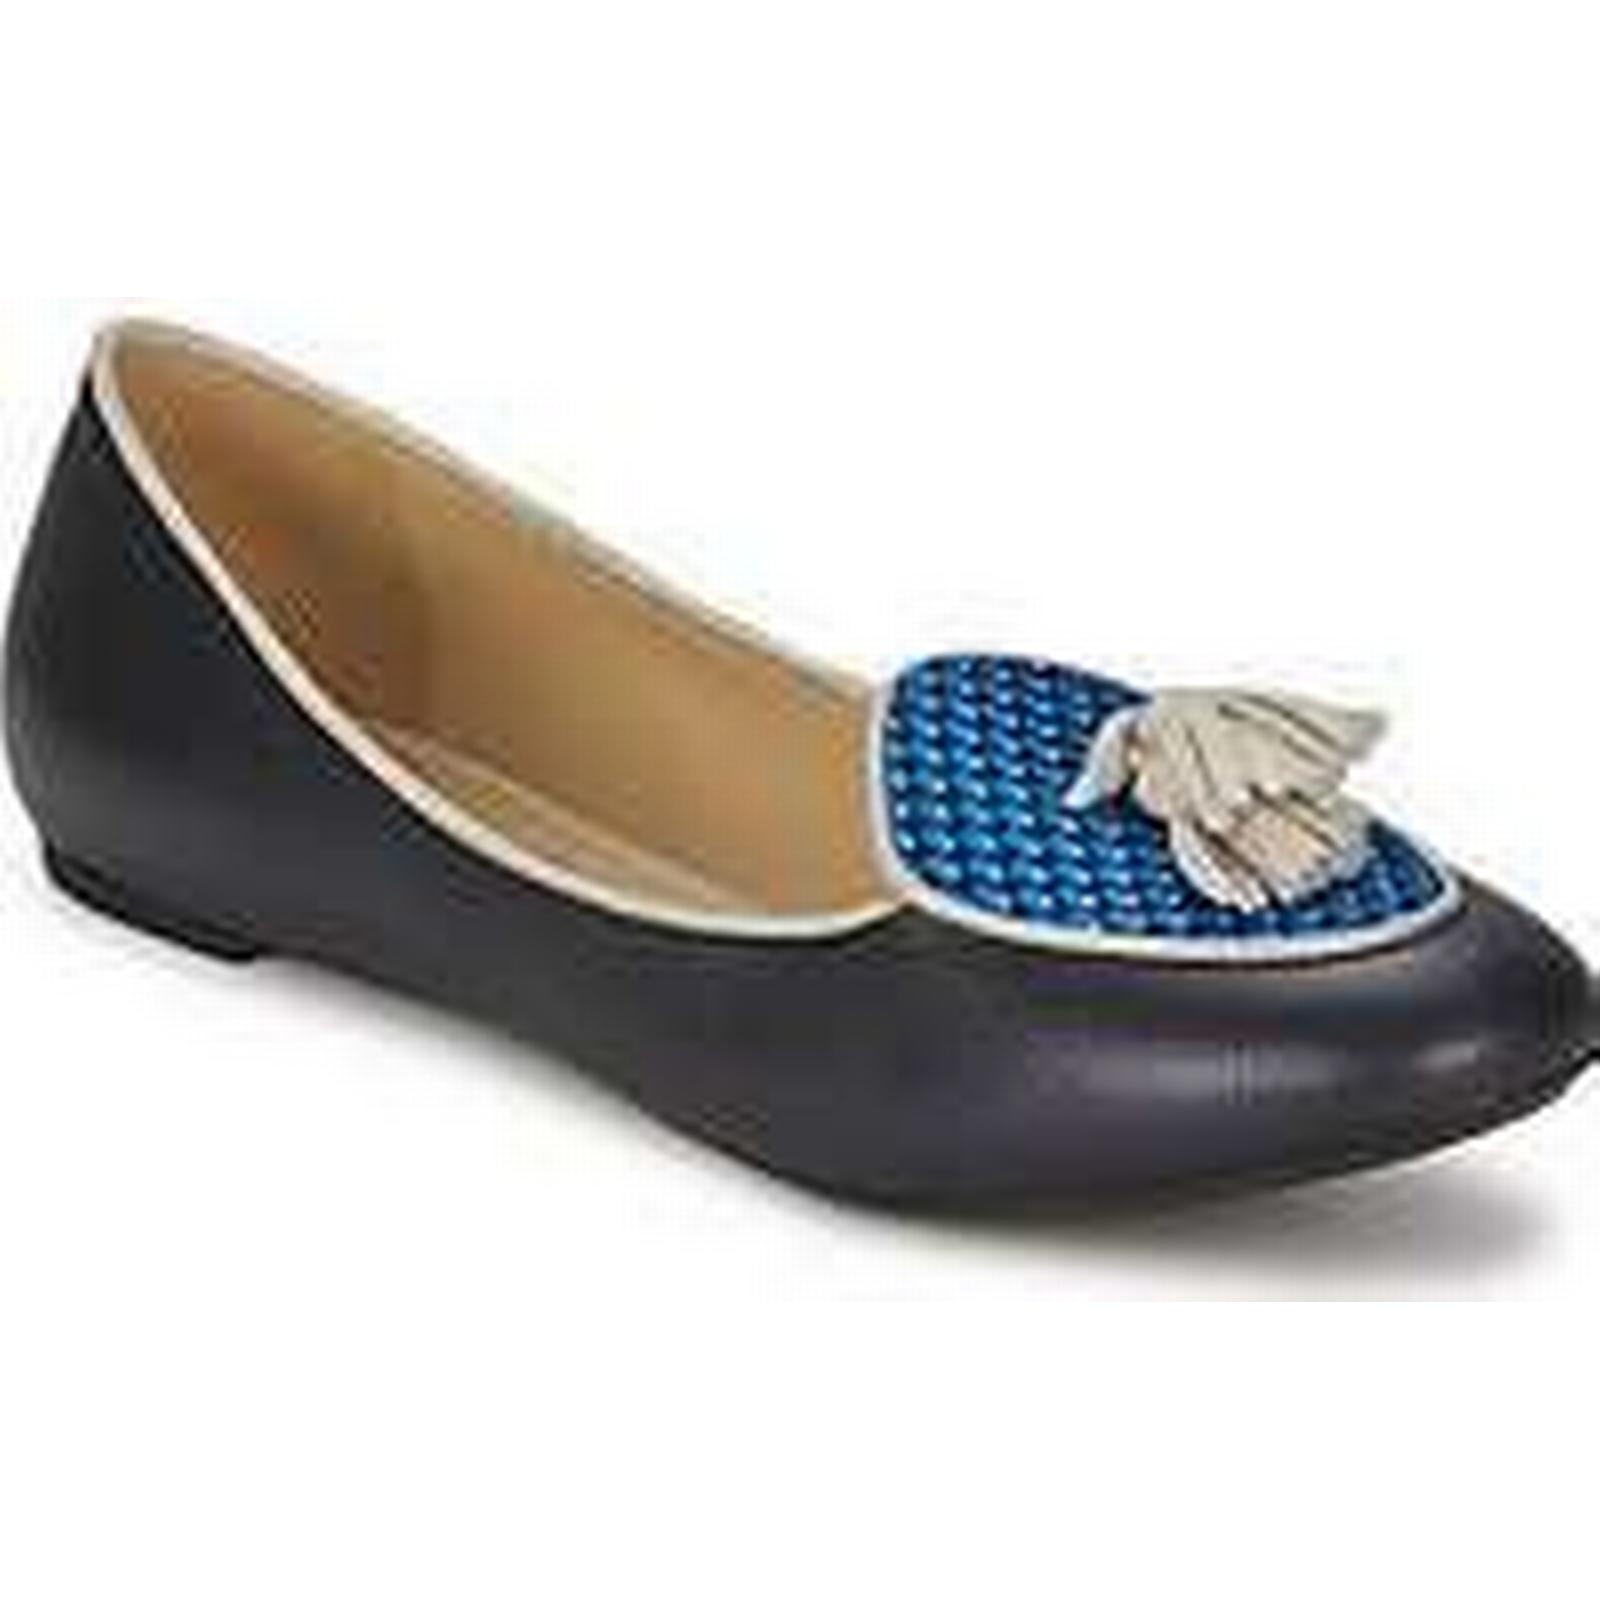 Spartoo.co.uk Etro 3922 women's Shoes Blue (Pumps / Ballerinas) in Blue Shoes 754b9c